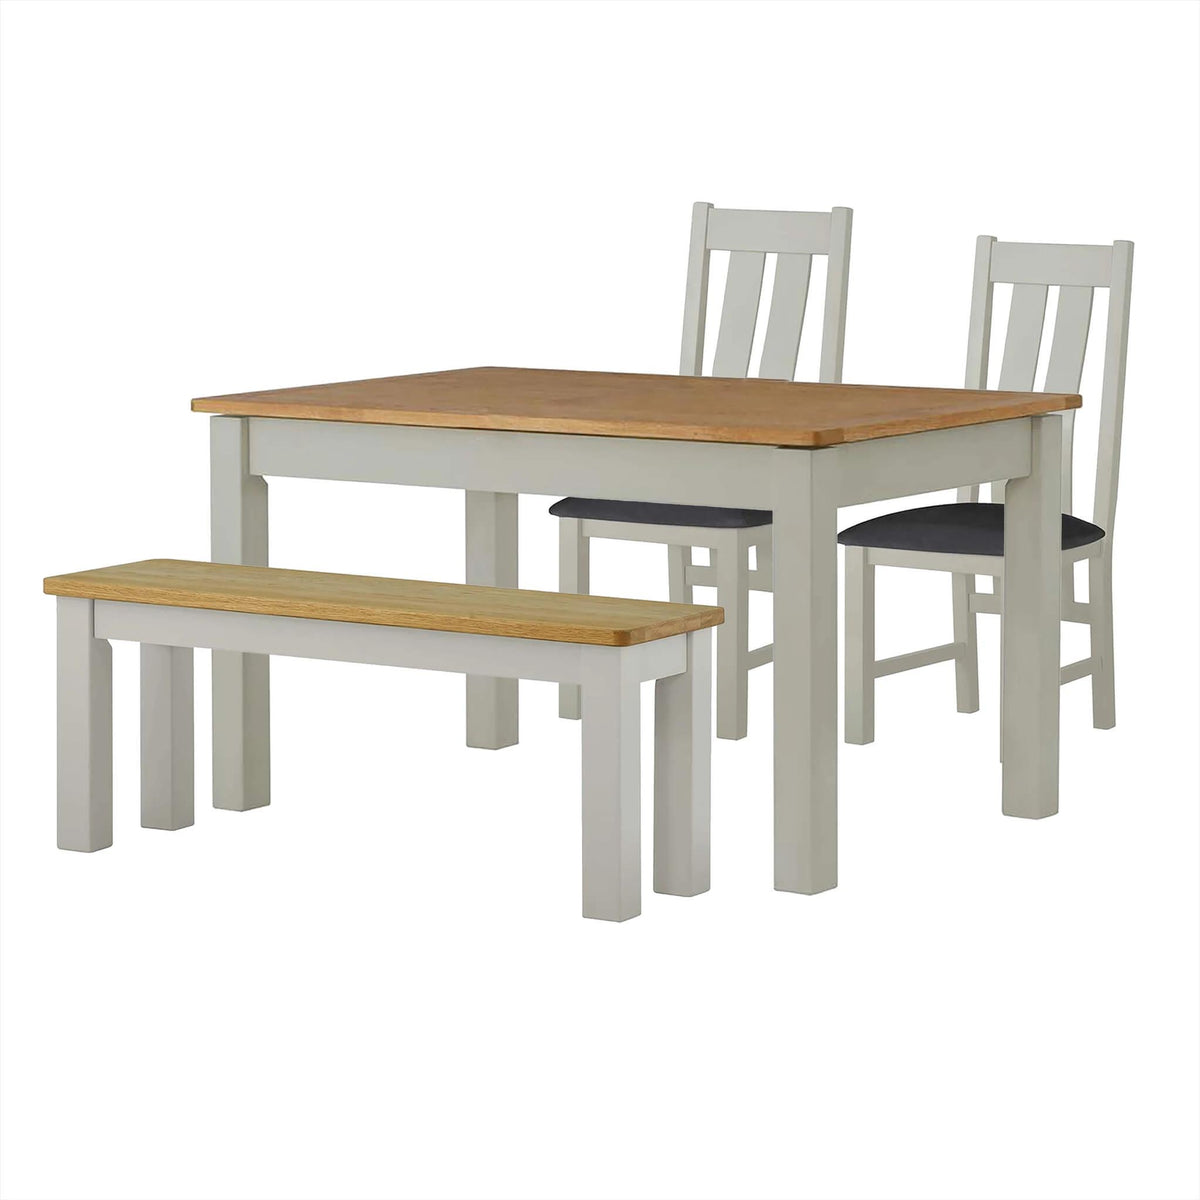 The Padstow Grey Dining Table Set with Indoor Bench and 2 Dining Chairs from Roseland Furniture